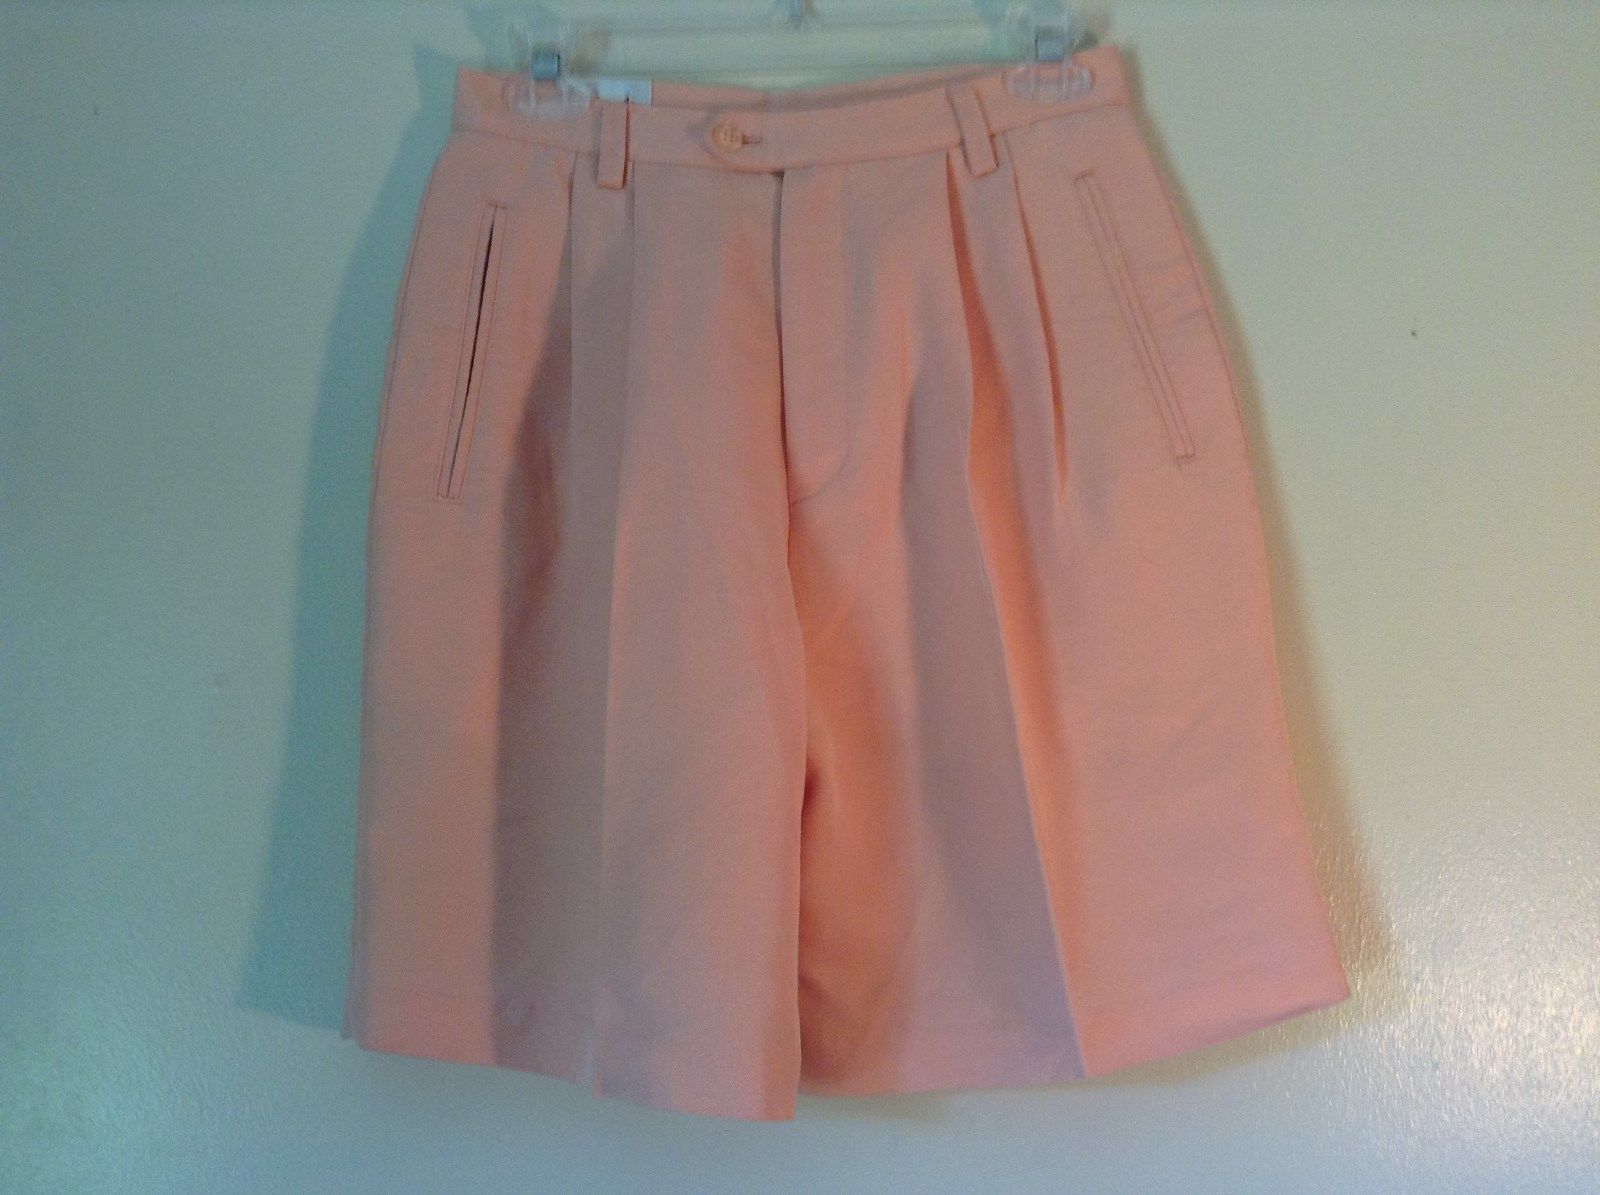 Very Nice Elandale Size 6 Peachy Pink Dress Shorts Zipper and Button Closure